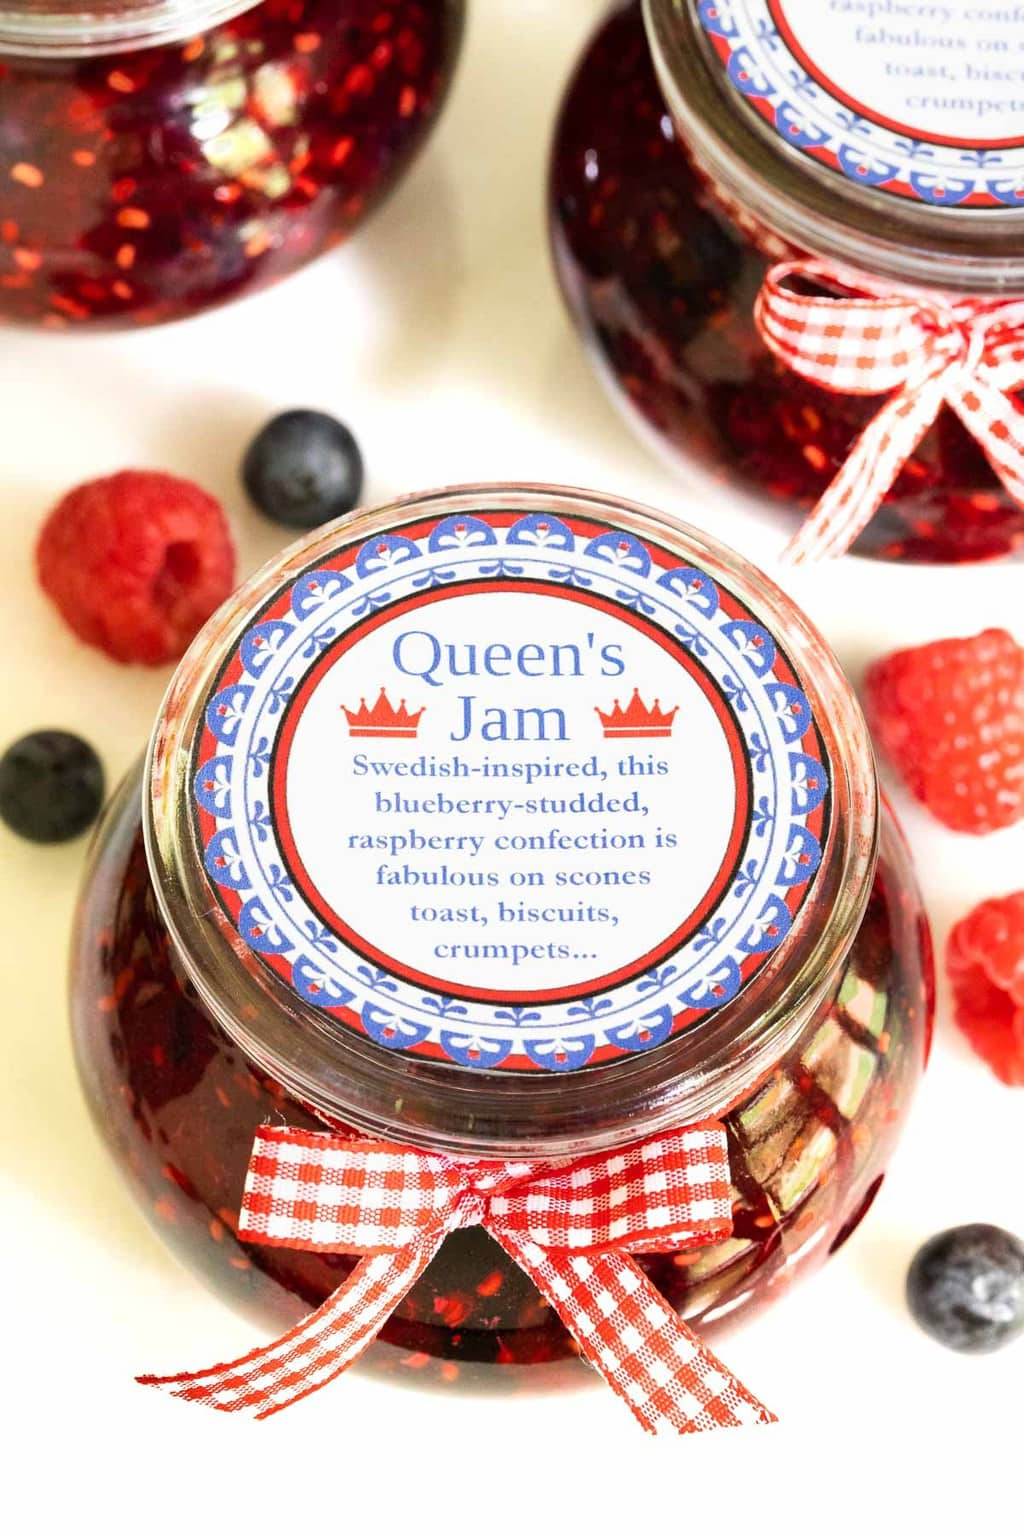 Ultra closeup vertical photo of jars of Queen's Jam (Raspberry Blueberry Jam) decorated with red and white checked ribbons.